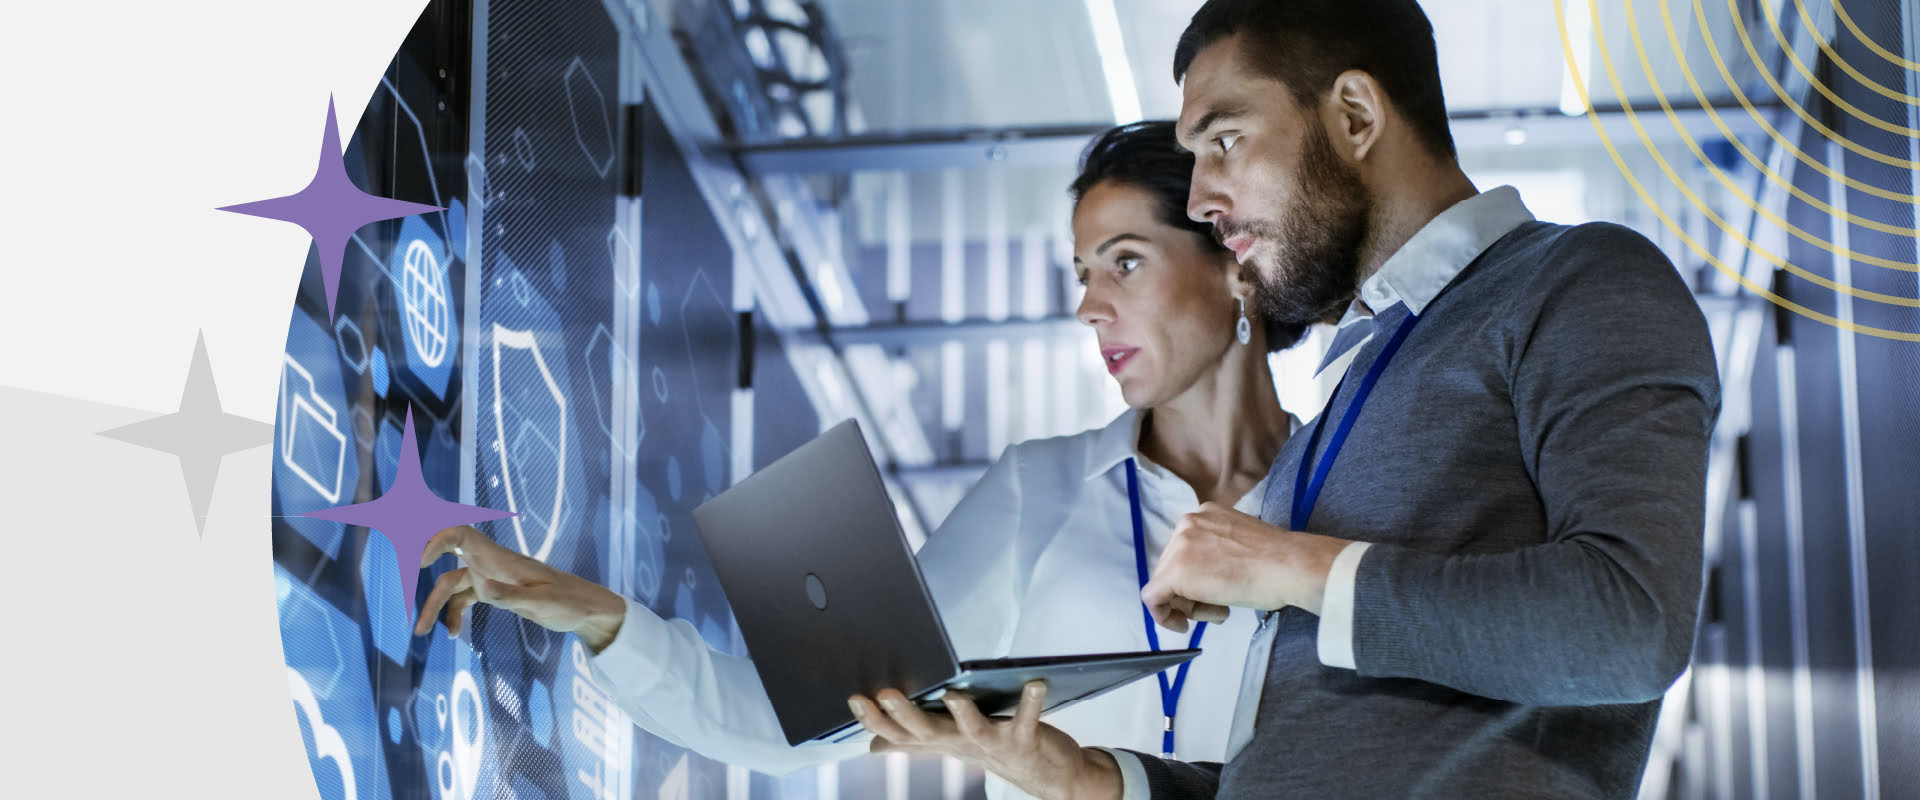 IT consultants help align IT strategy with business strategy